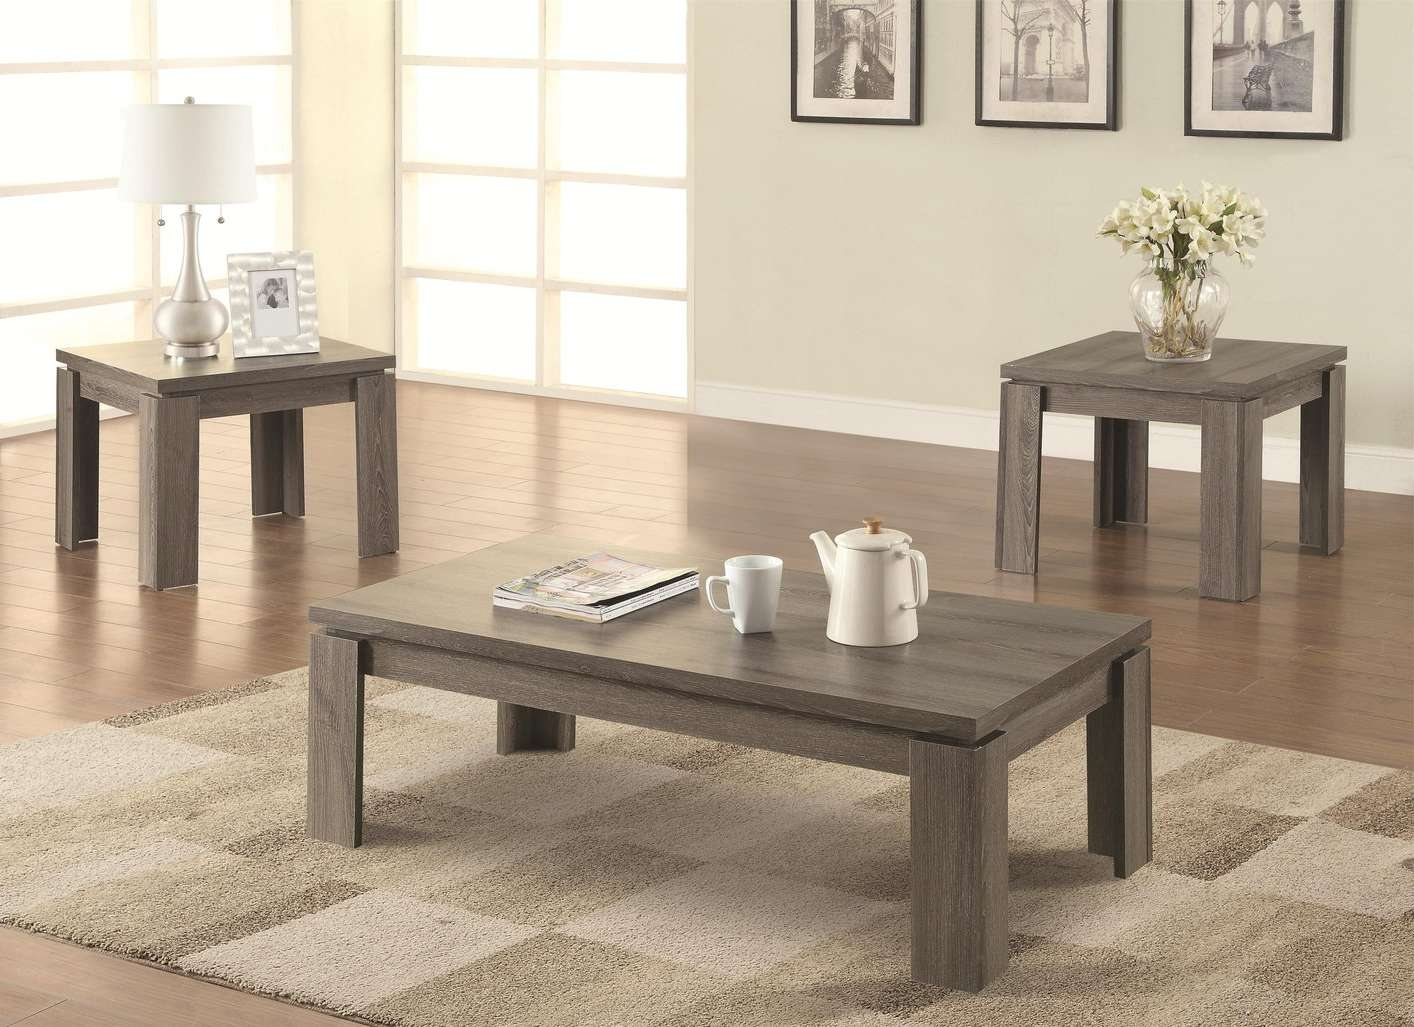 Widely Used Grey Coffee Table Sets Intended For Sleek And Stylish Coffee Table Sets – Bestartisticinteriors (View 2 of 20)